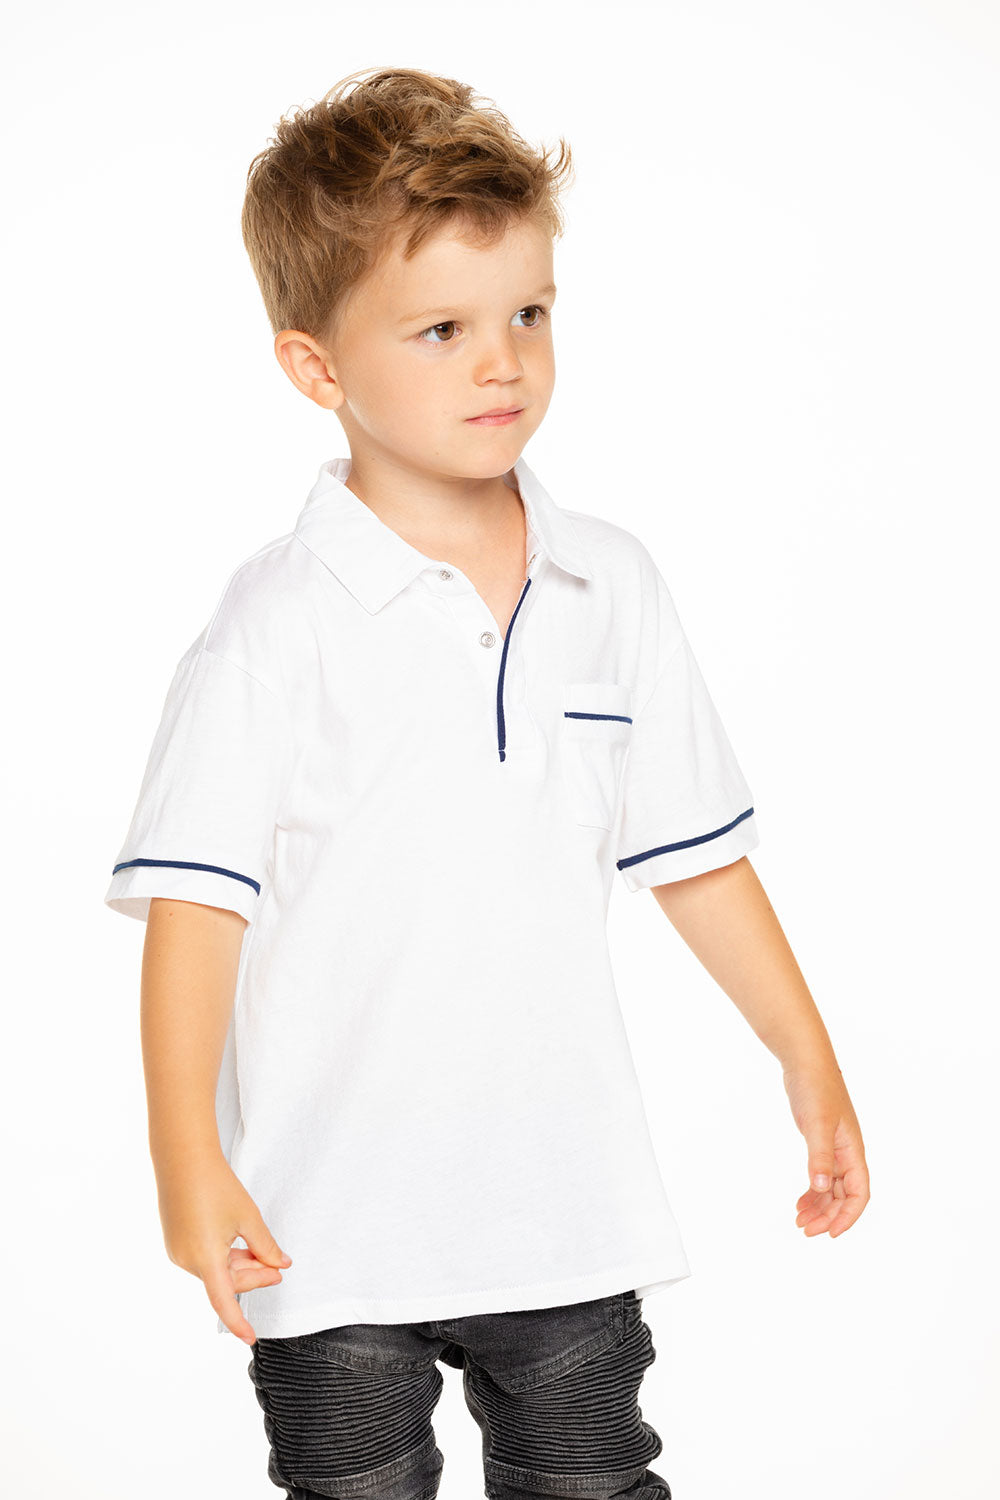 Boys Cotton Jersey Short Sleeve Pocket Polo with Piping in White BOYS chaserbrand4.myshopify.com